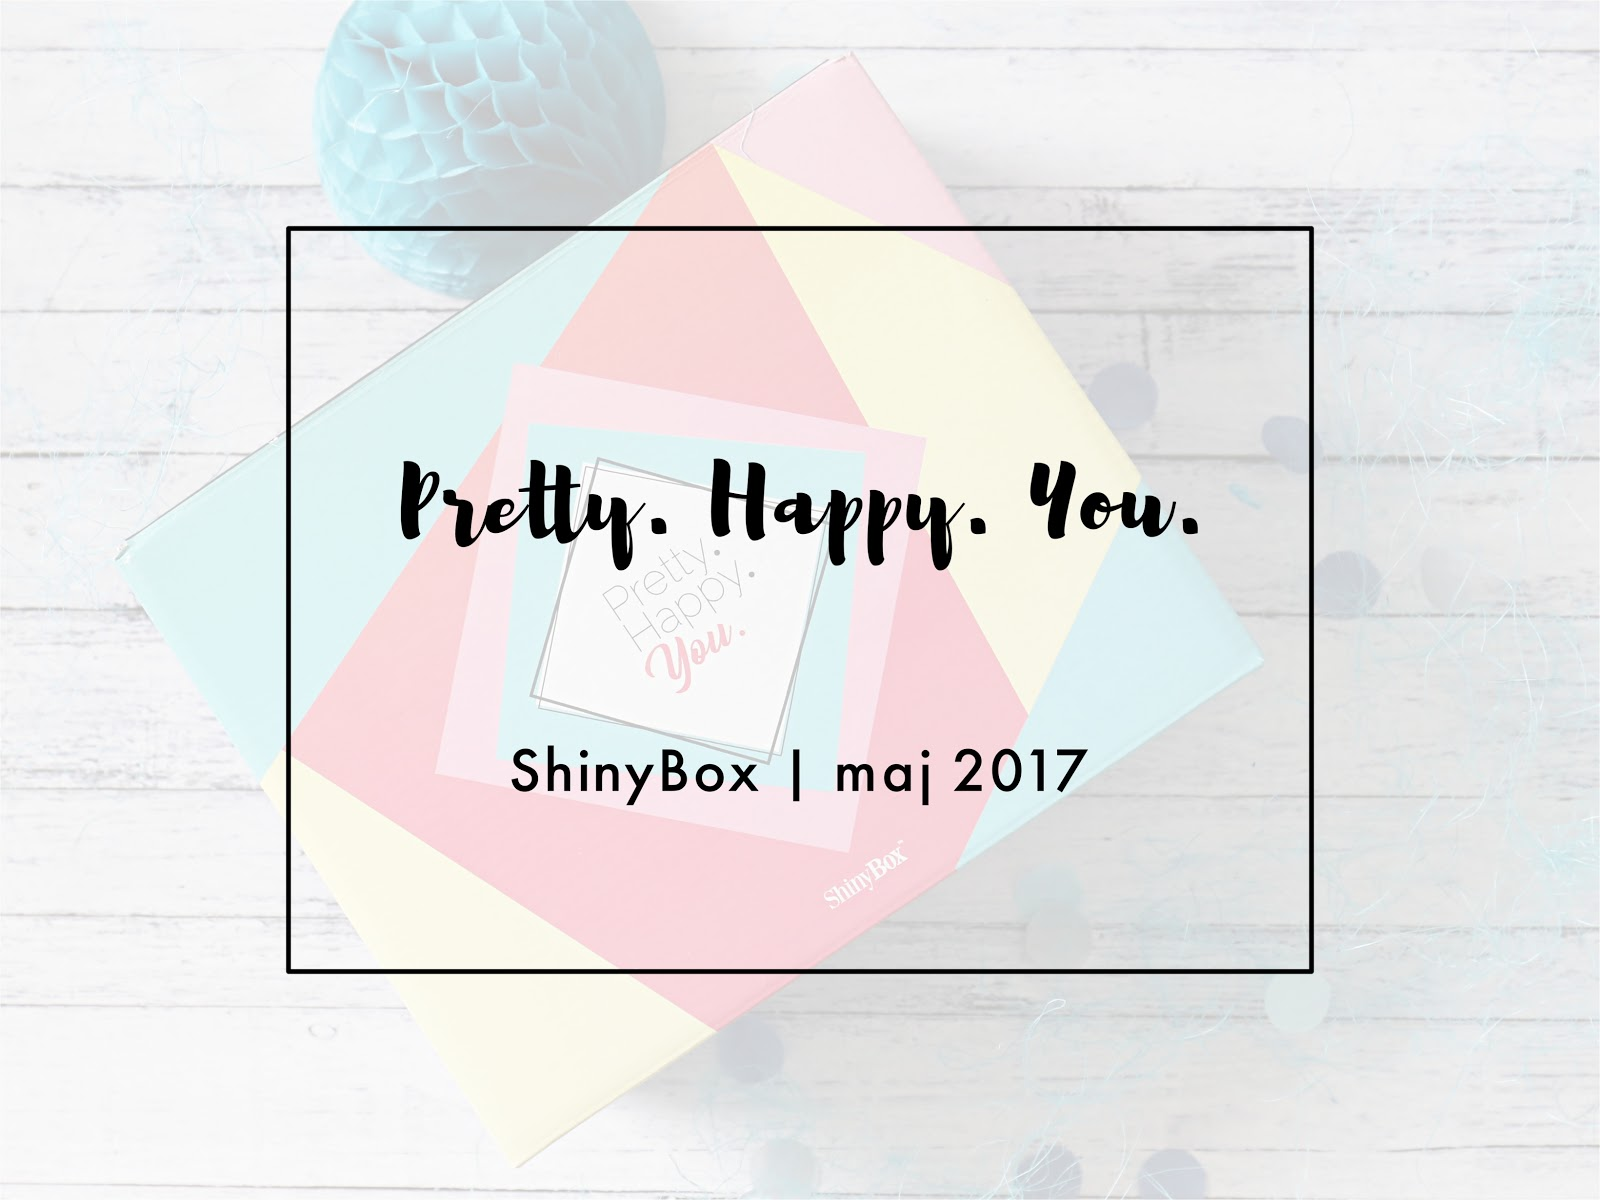 Shinybox maj